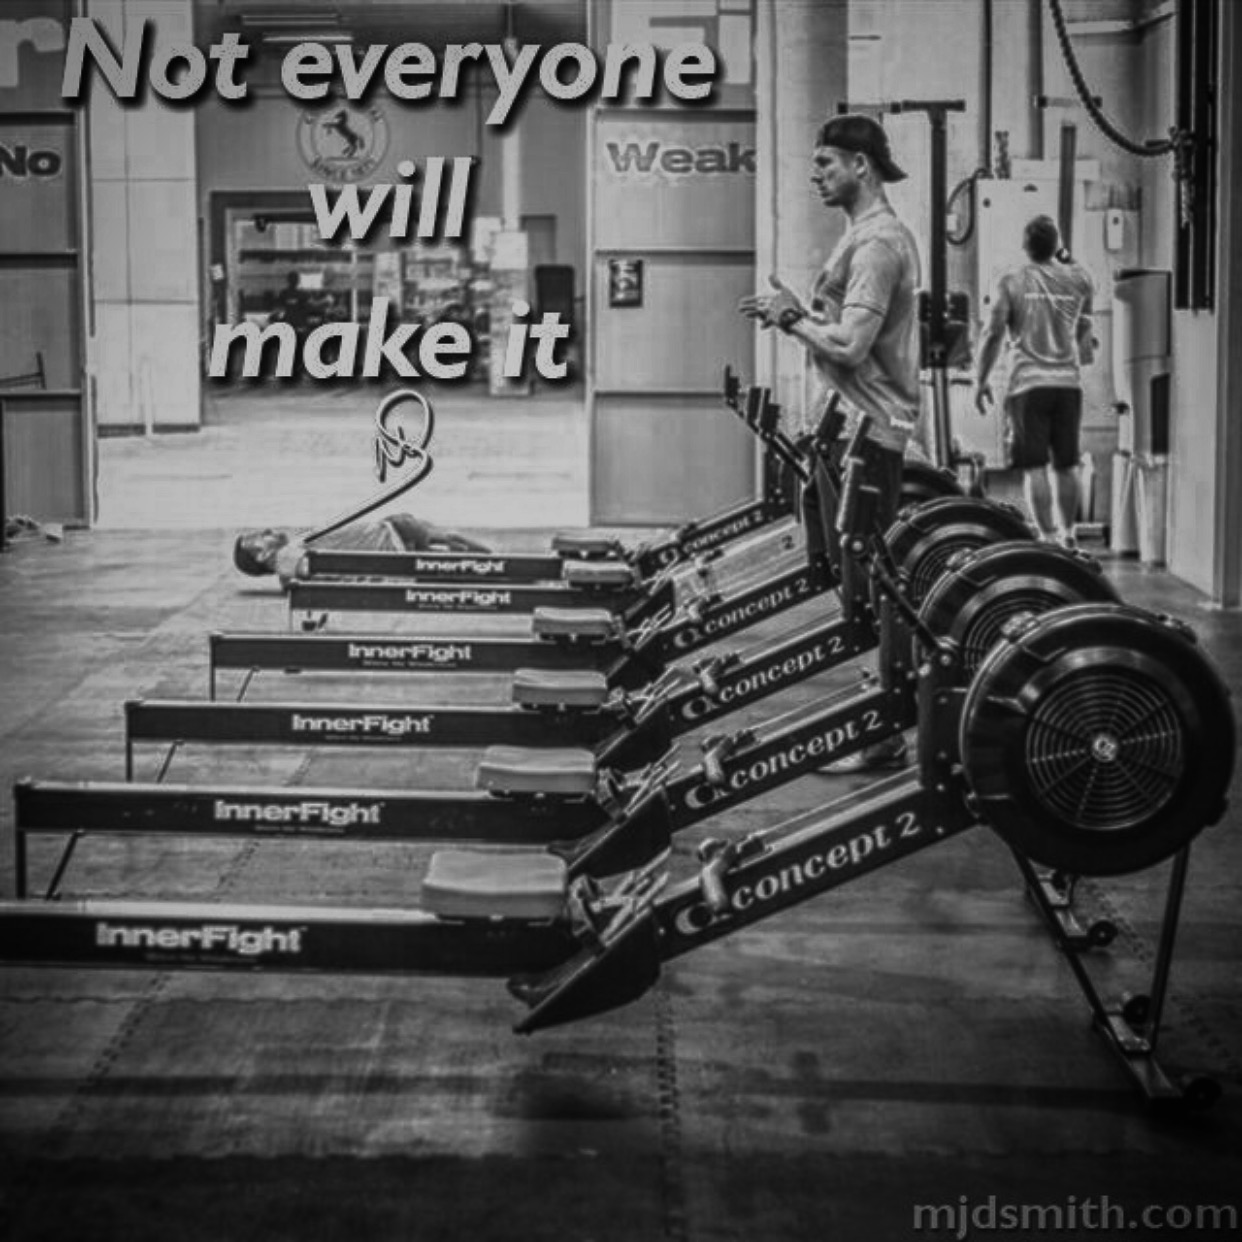 Not everyone will make it